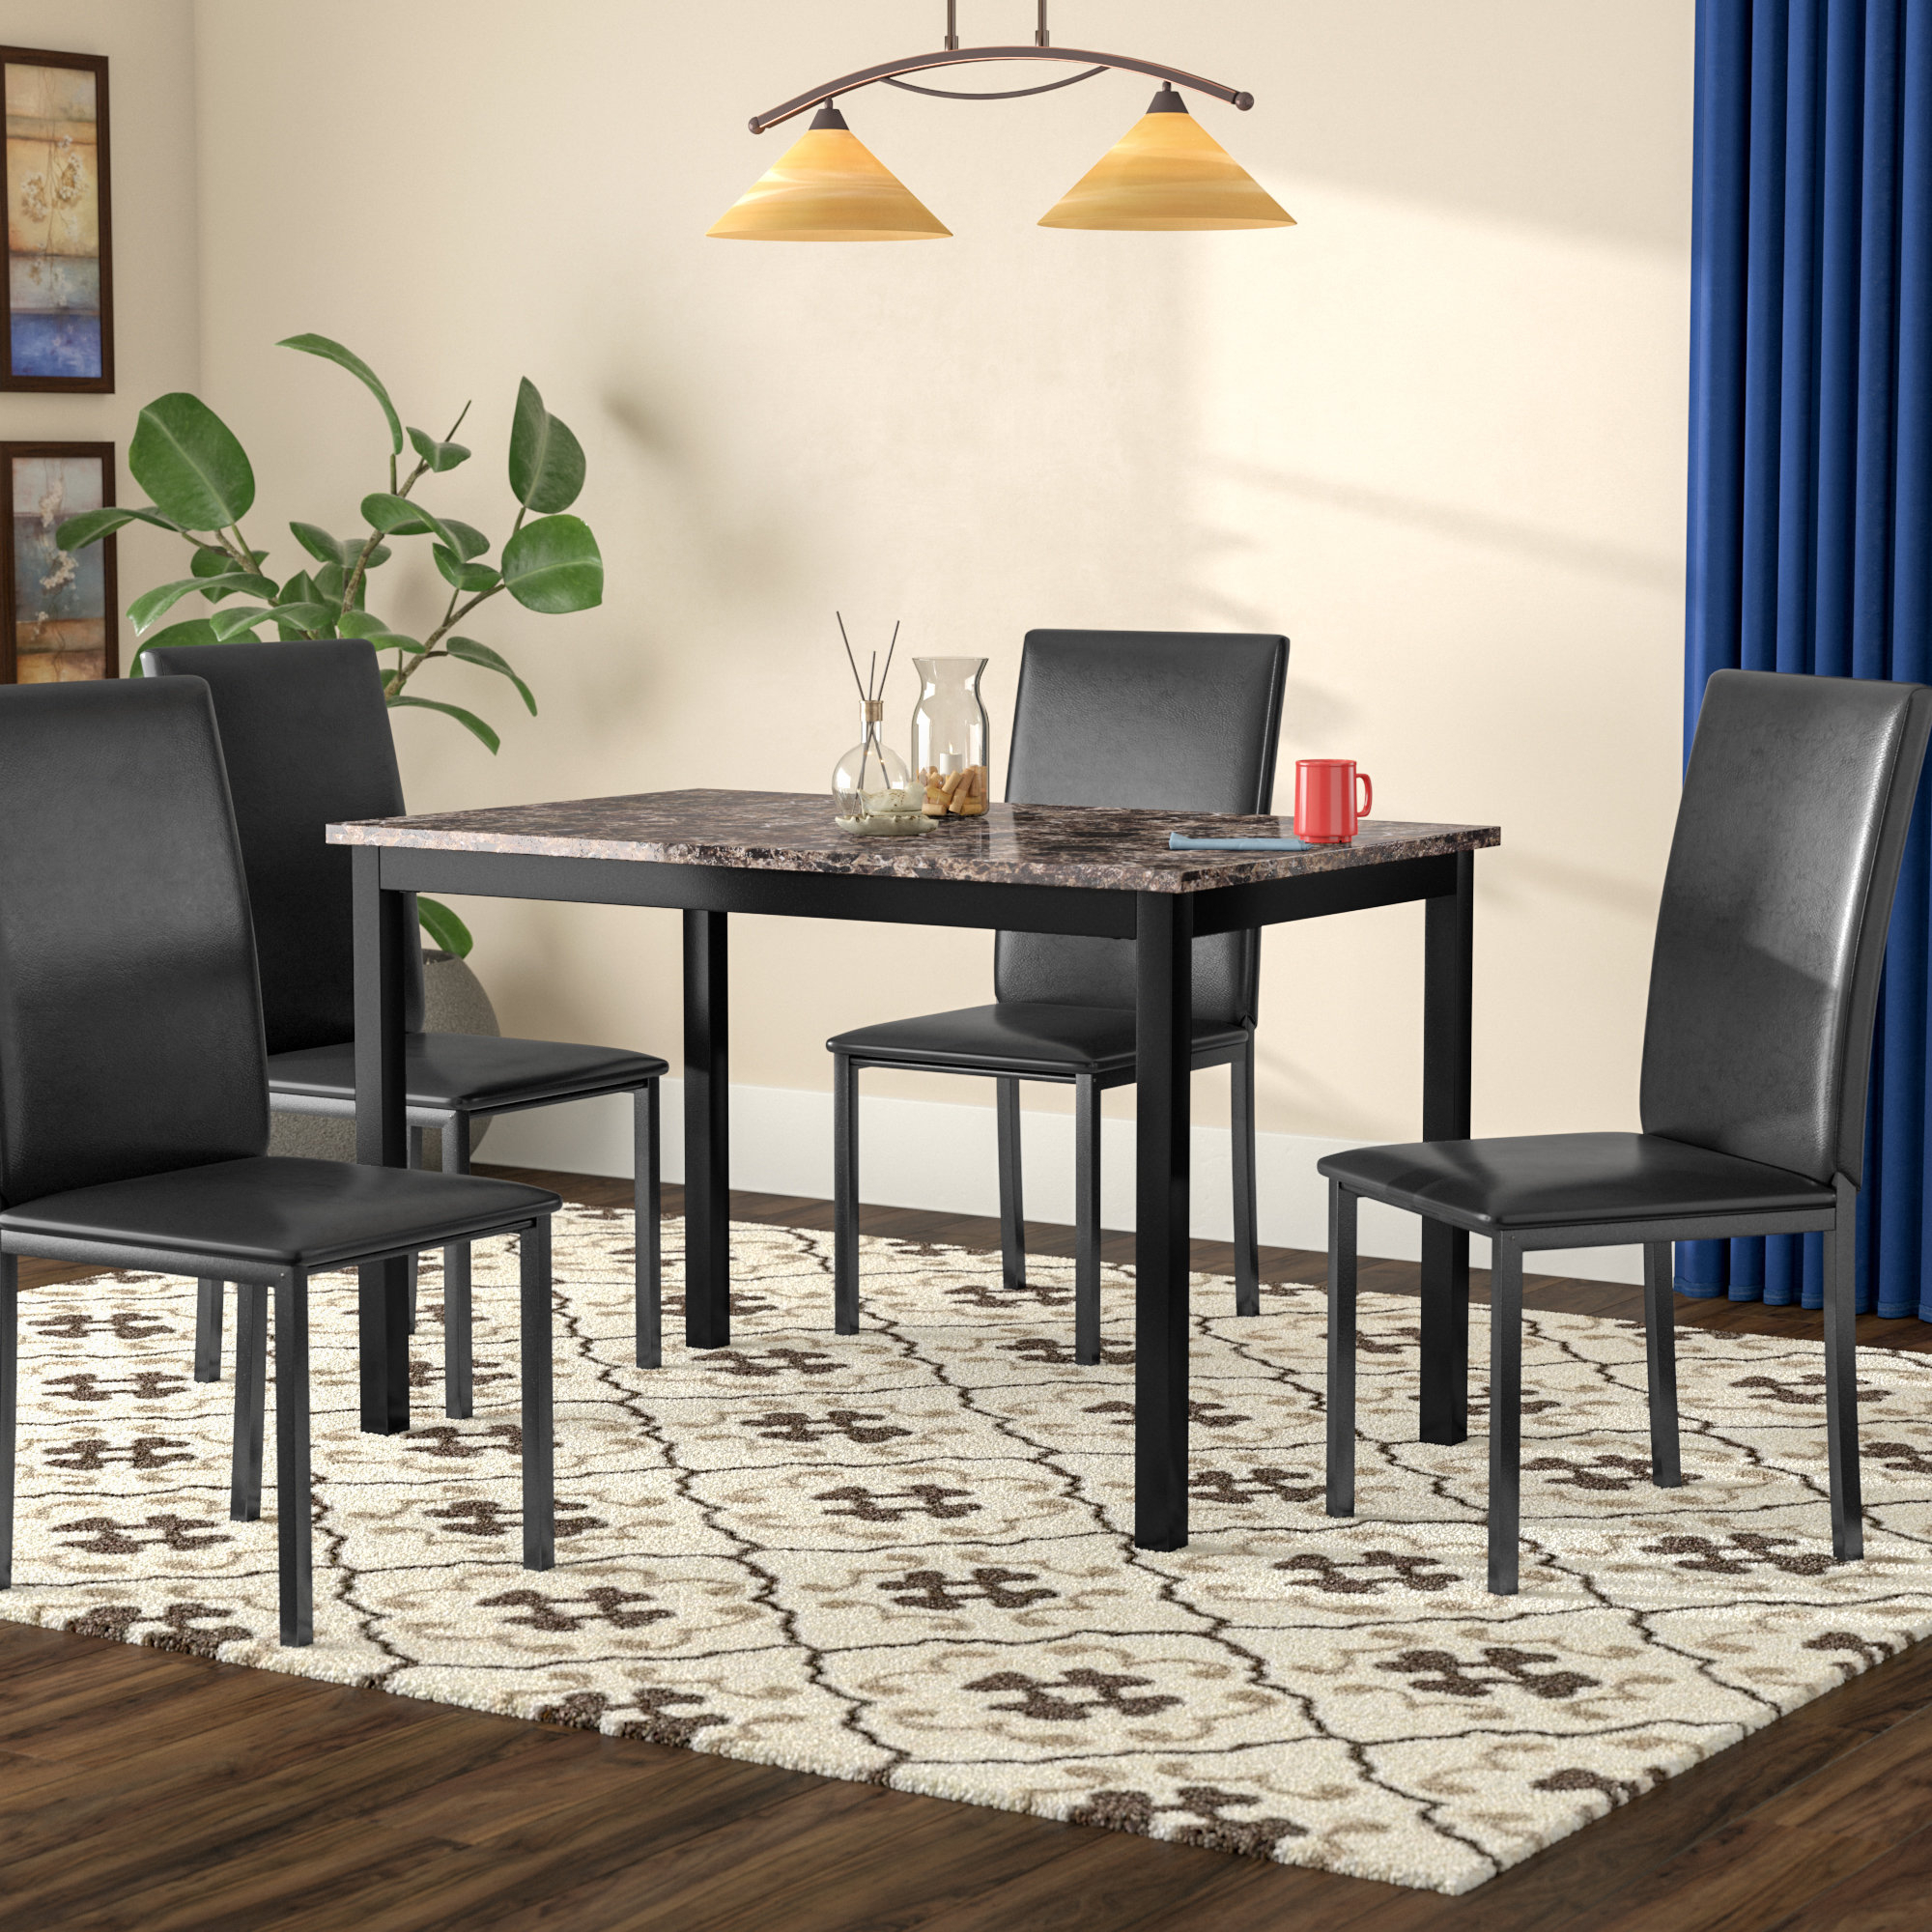 Most Popular Red Barrel Studio Noyes 5 Piece Dining Set & Reviews (View 2 of 20)